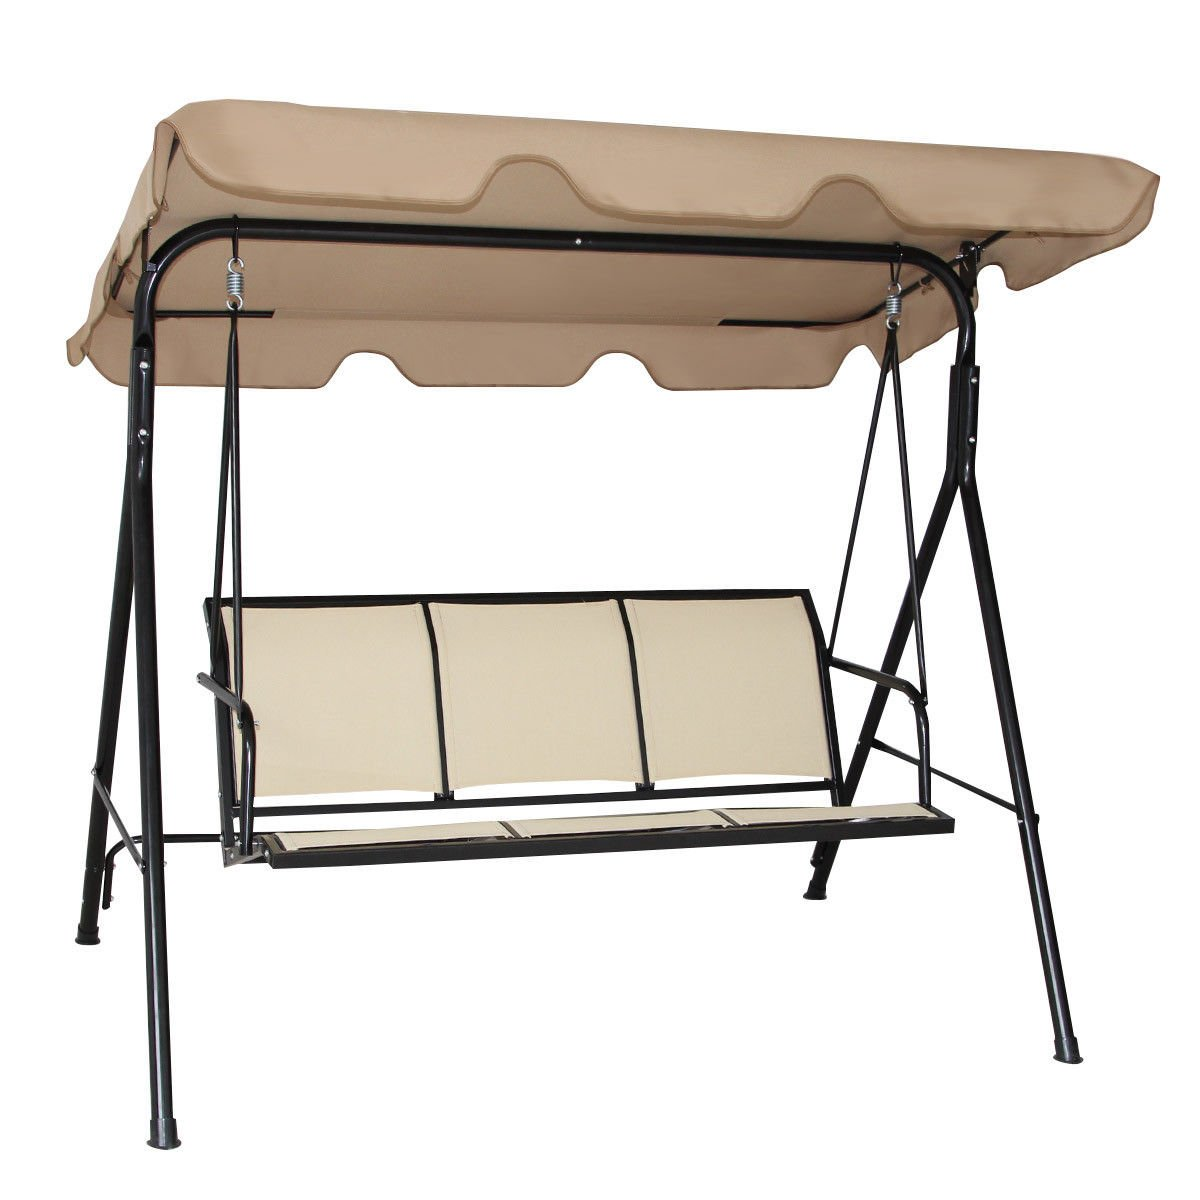 FDInspiration 67'' Light Brown Patio Textile Fiber Swing Canopy 3 Person Seat Capacity 550 Llbs w/Polyester Cloth Top Cover by FDInspiration